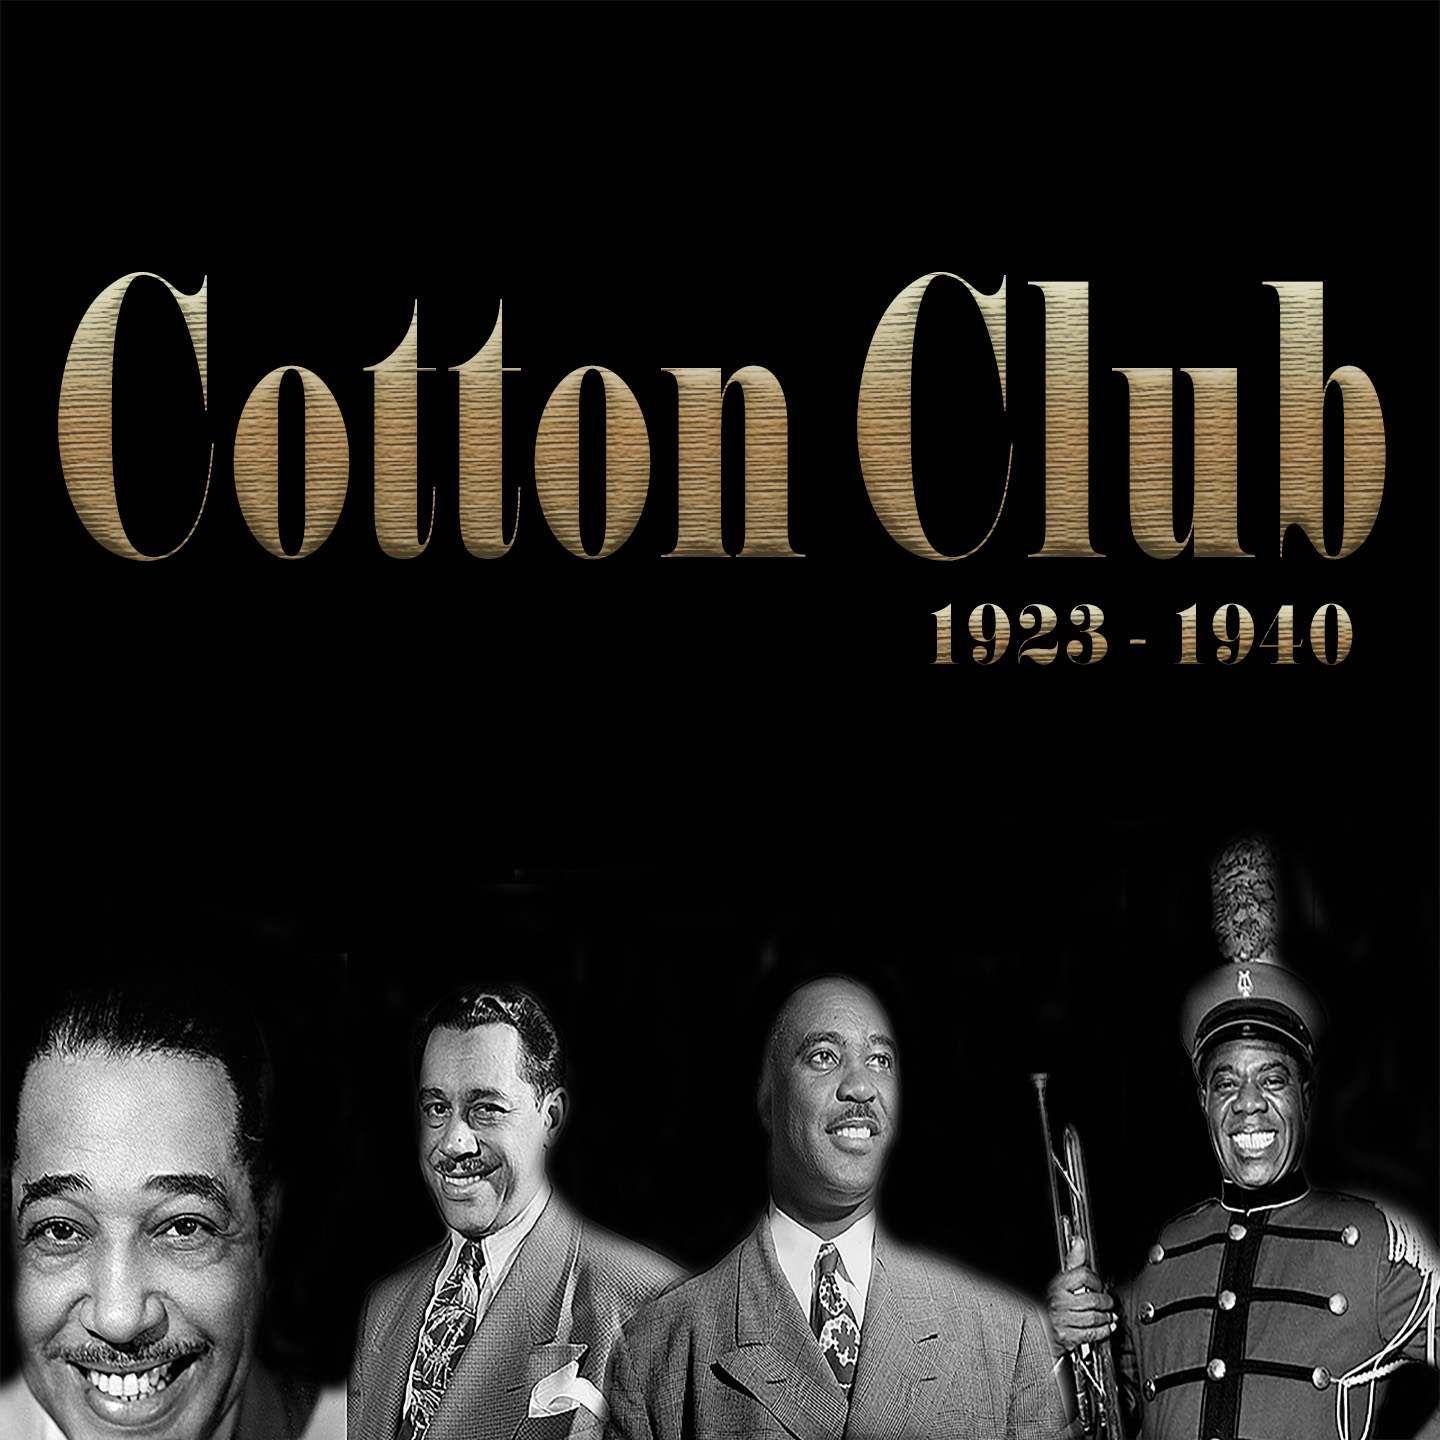 Cotton Club Days (1923-1940)